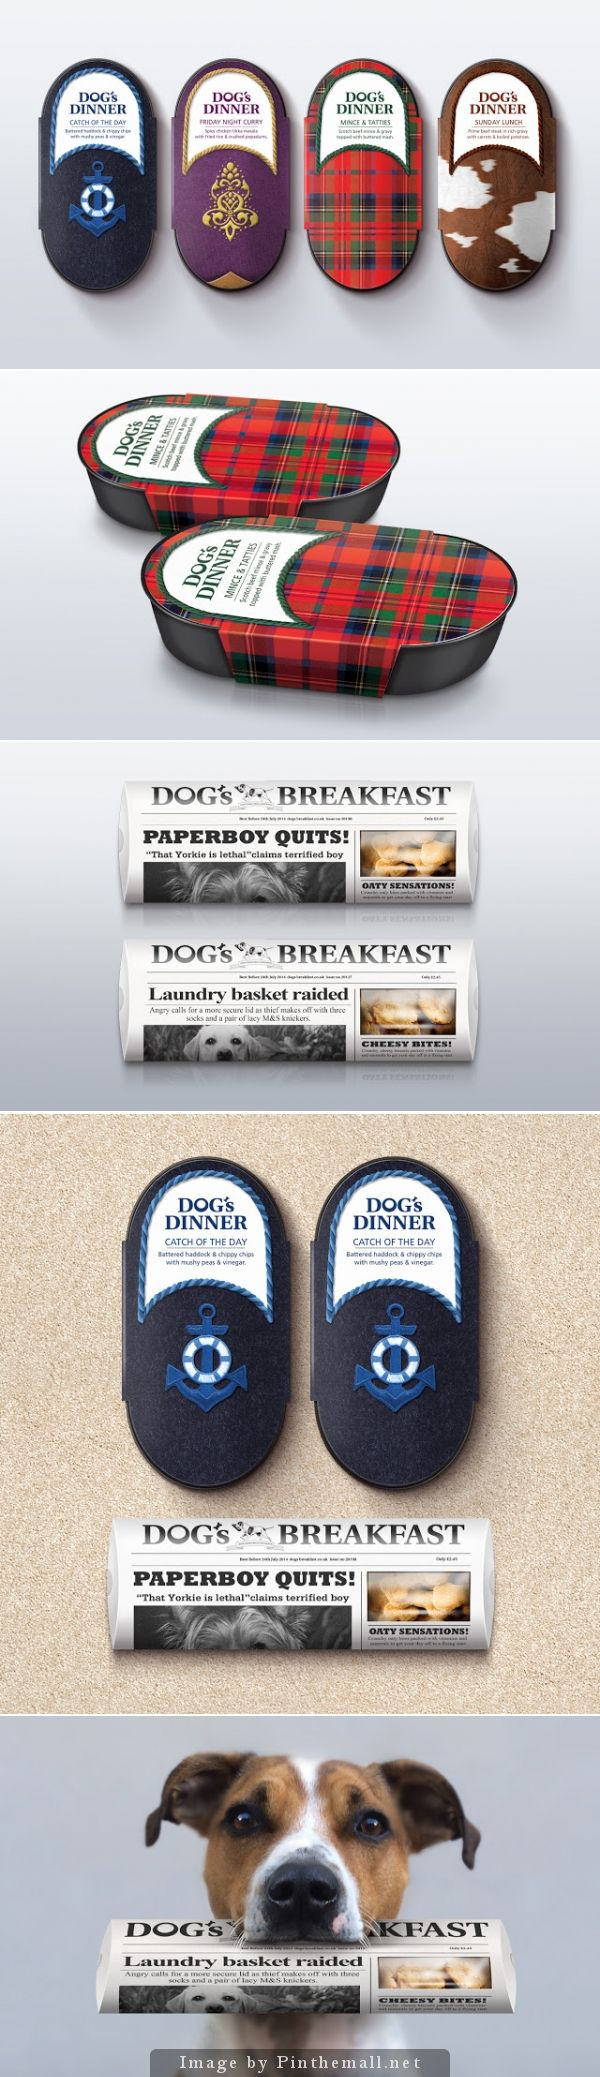 #Dog's Dinner (Concept), Creative Agency: Afterhours